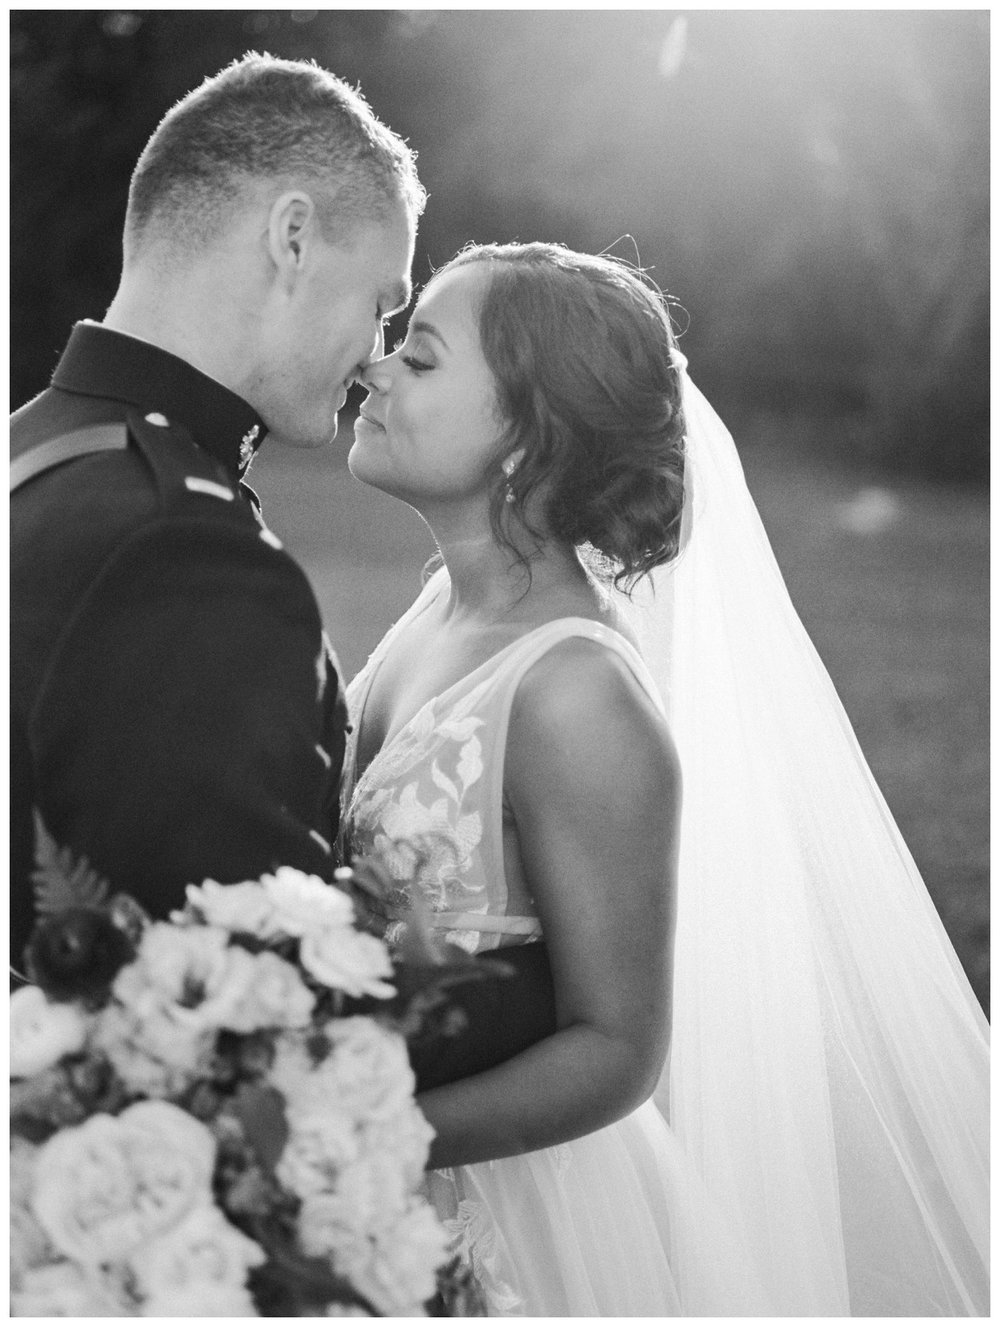 Sun drenched fall wedding in shades of pink at Oxon Hill Manor in Maryland by fine art wedding photographer Lissa Ryan Photography